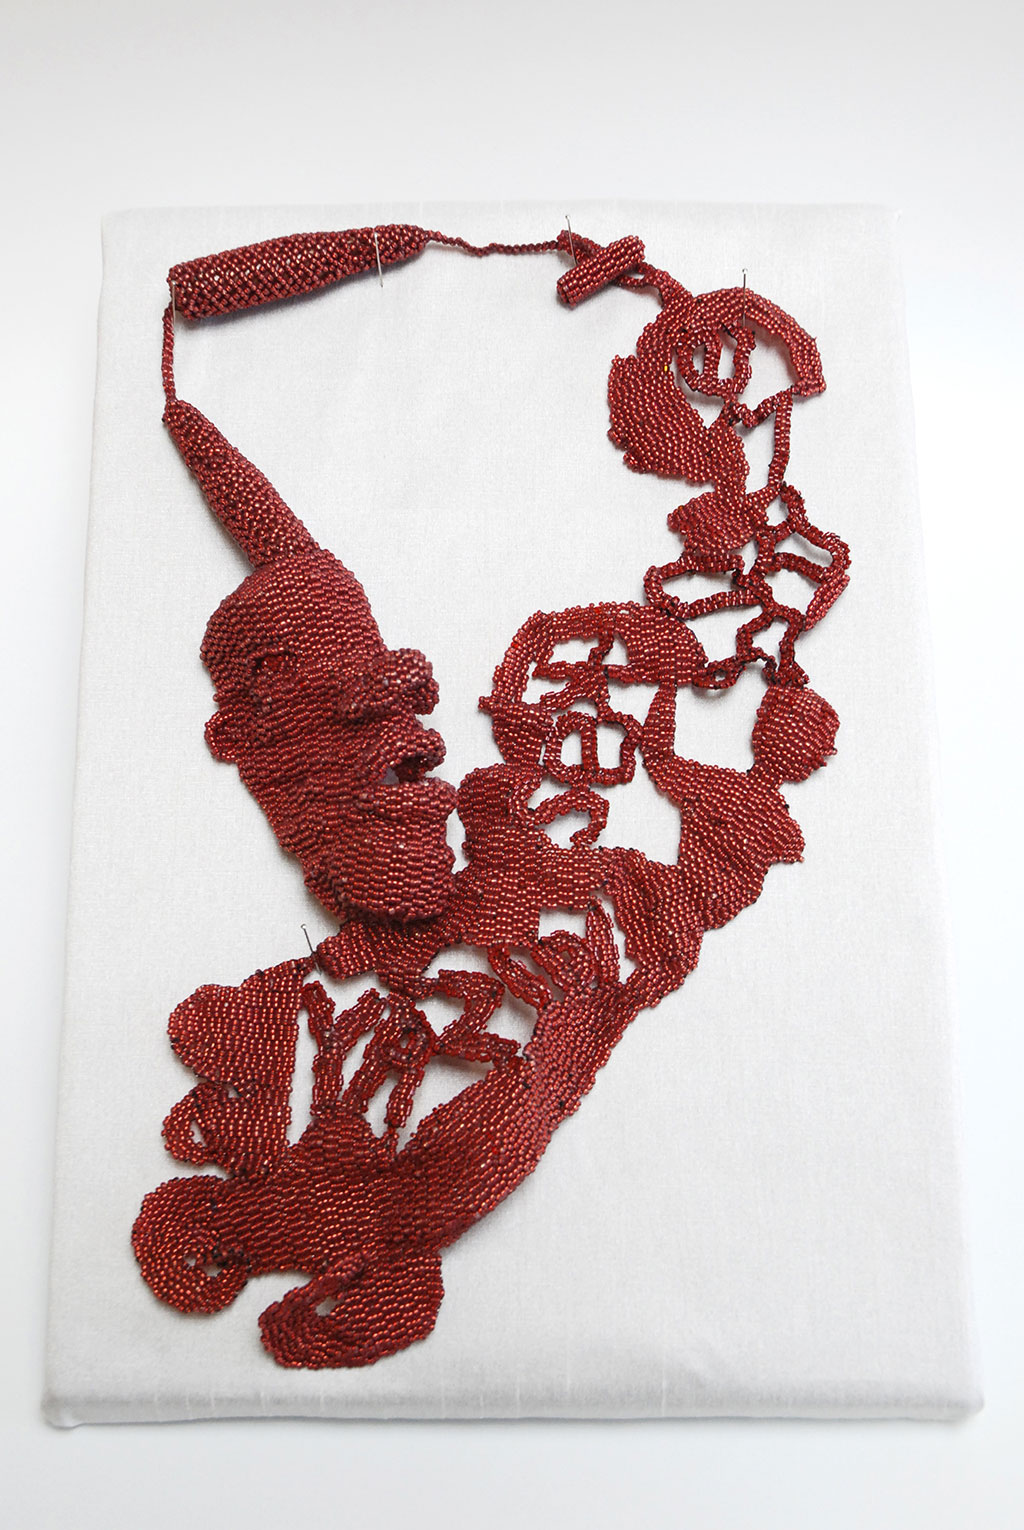 Joyce J. Scott, Yazidi Sex Slave Necklace, 2016